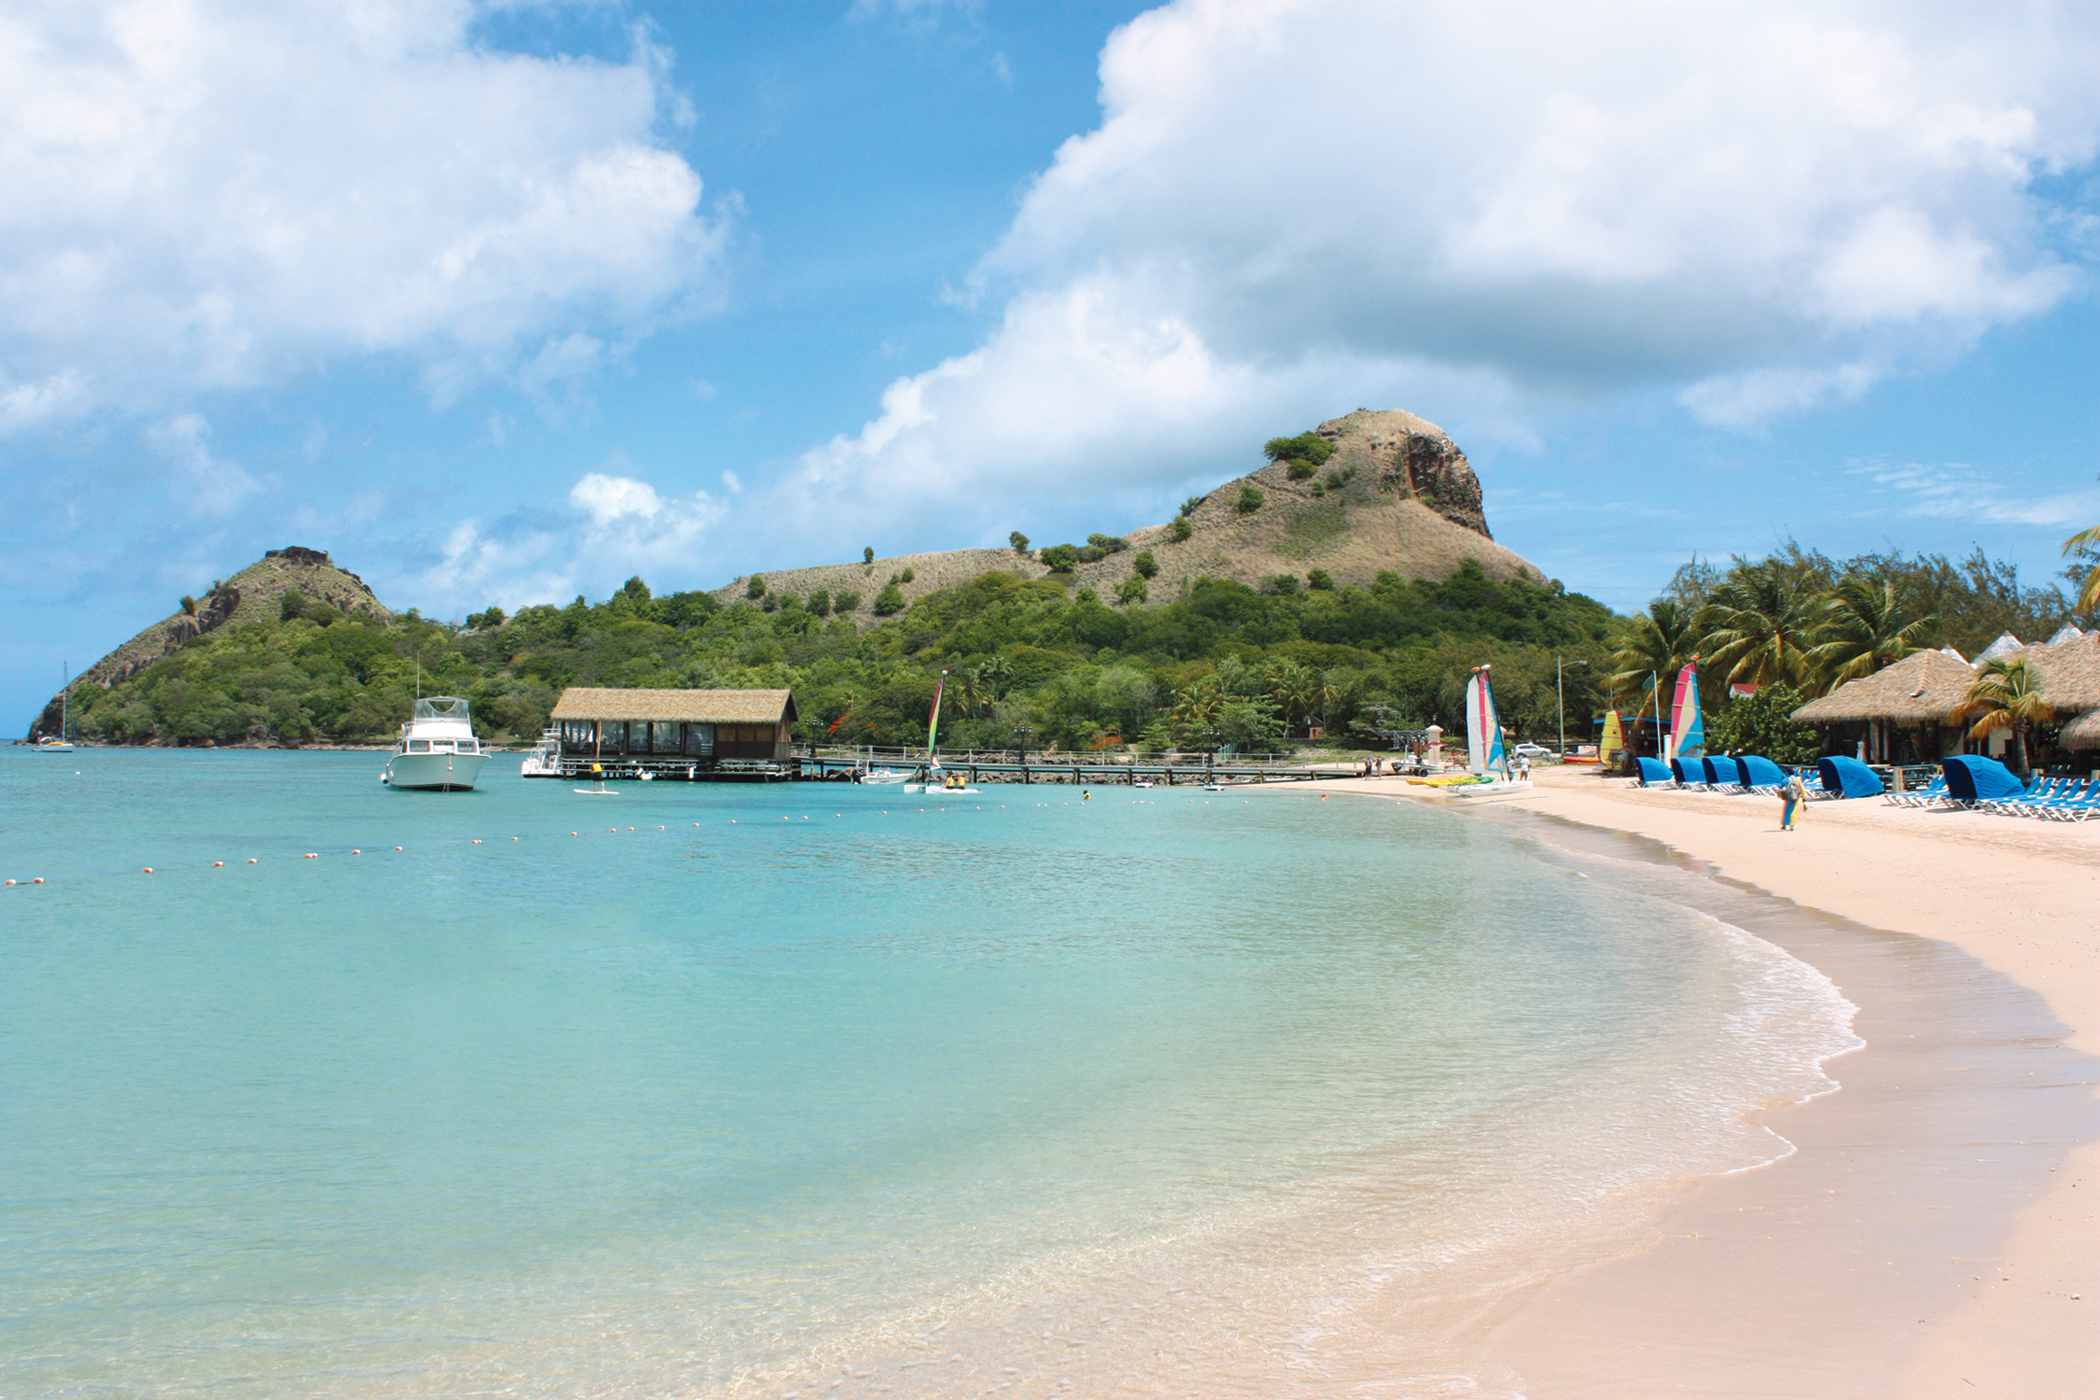 View of beach resort located on Pigeon Island in St. Lucia